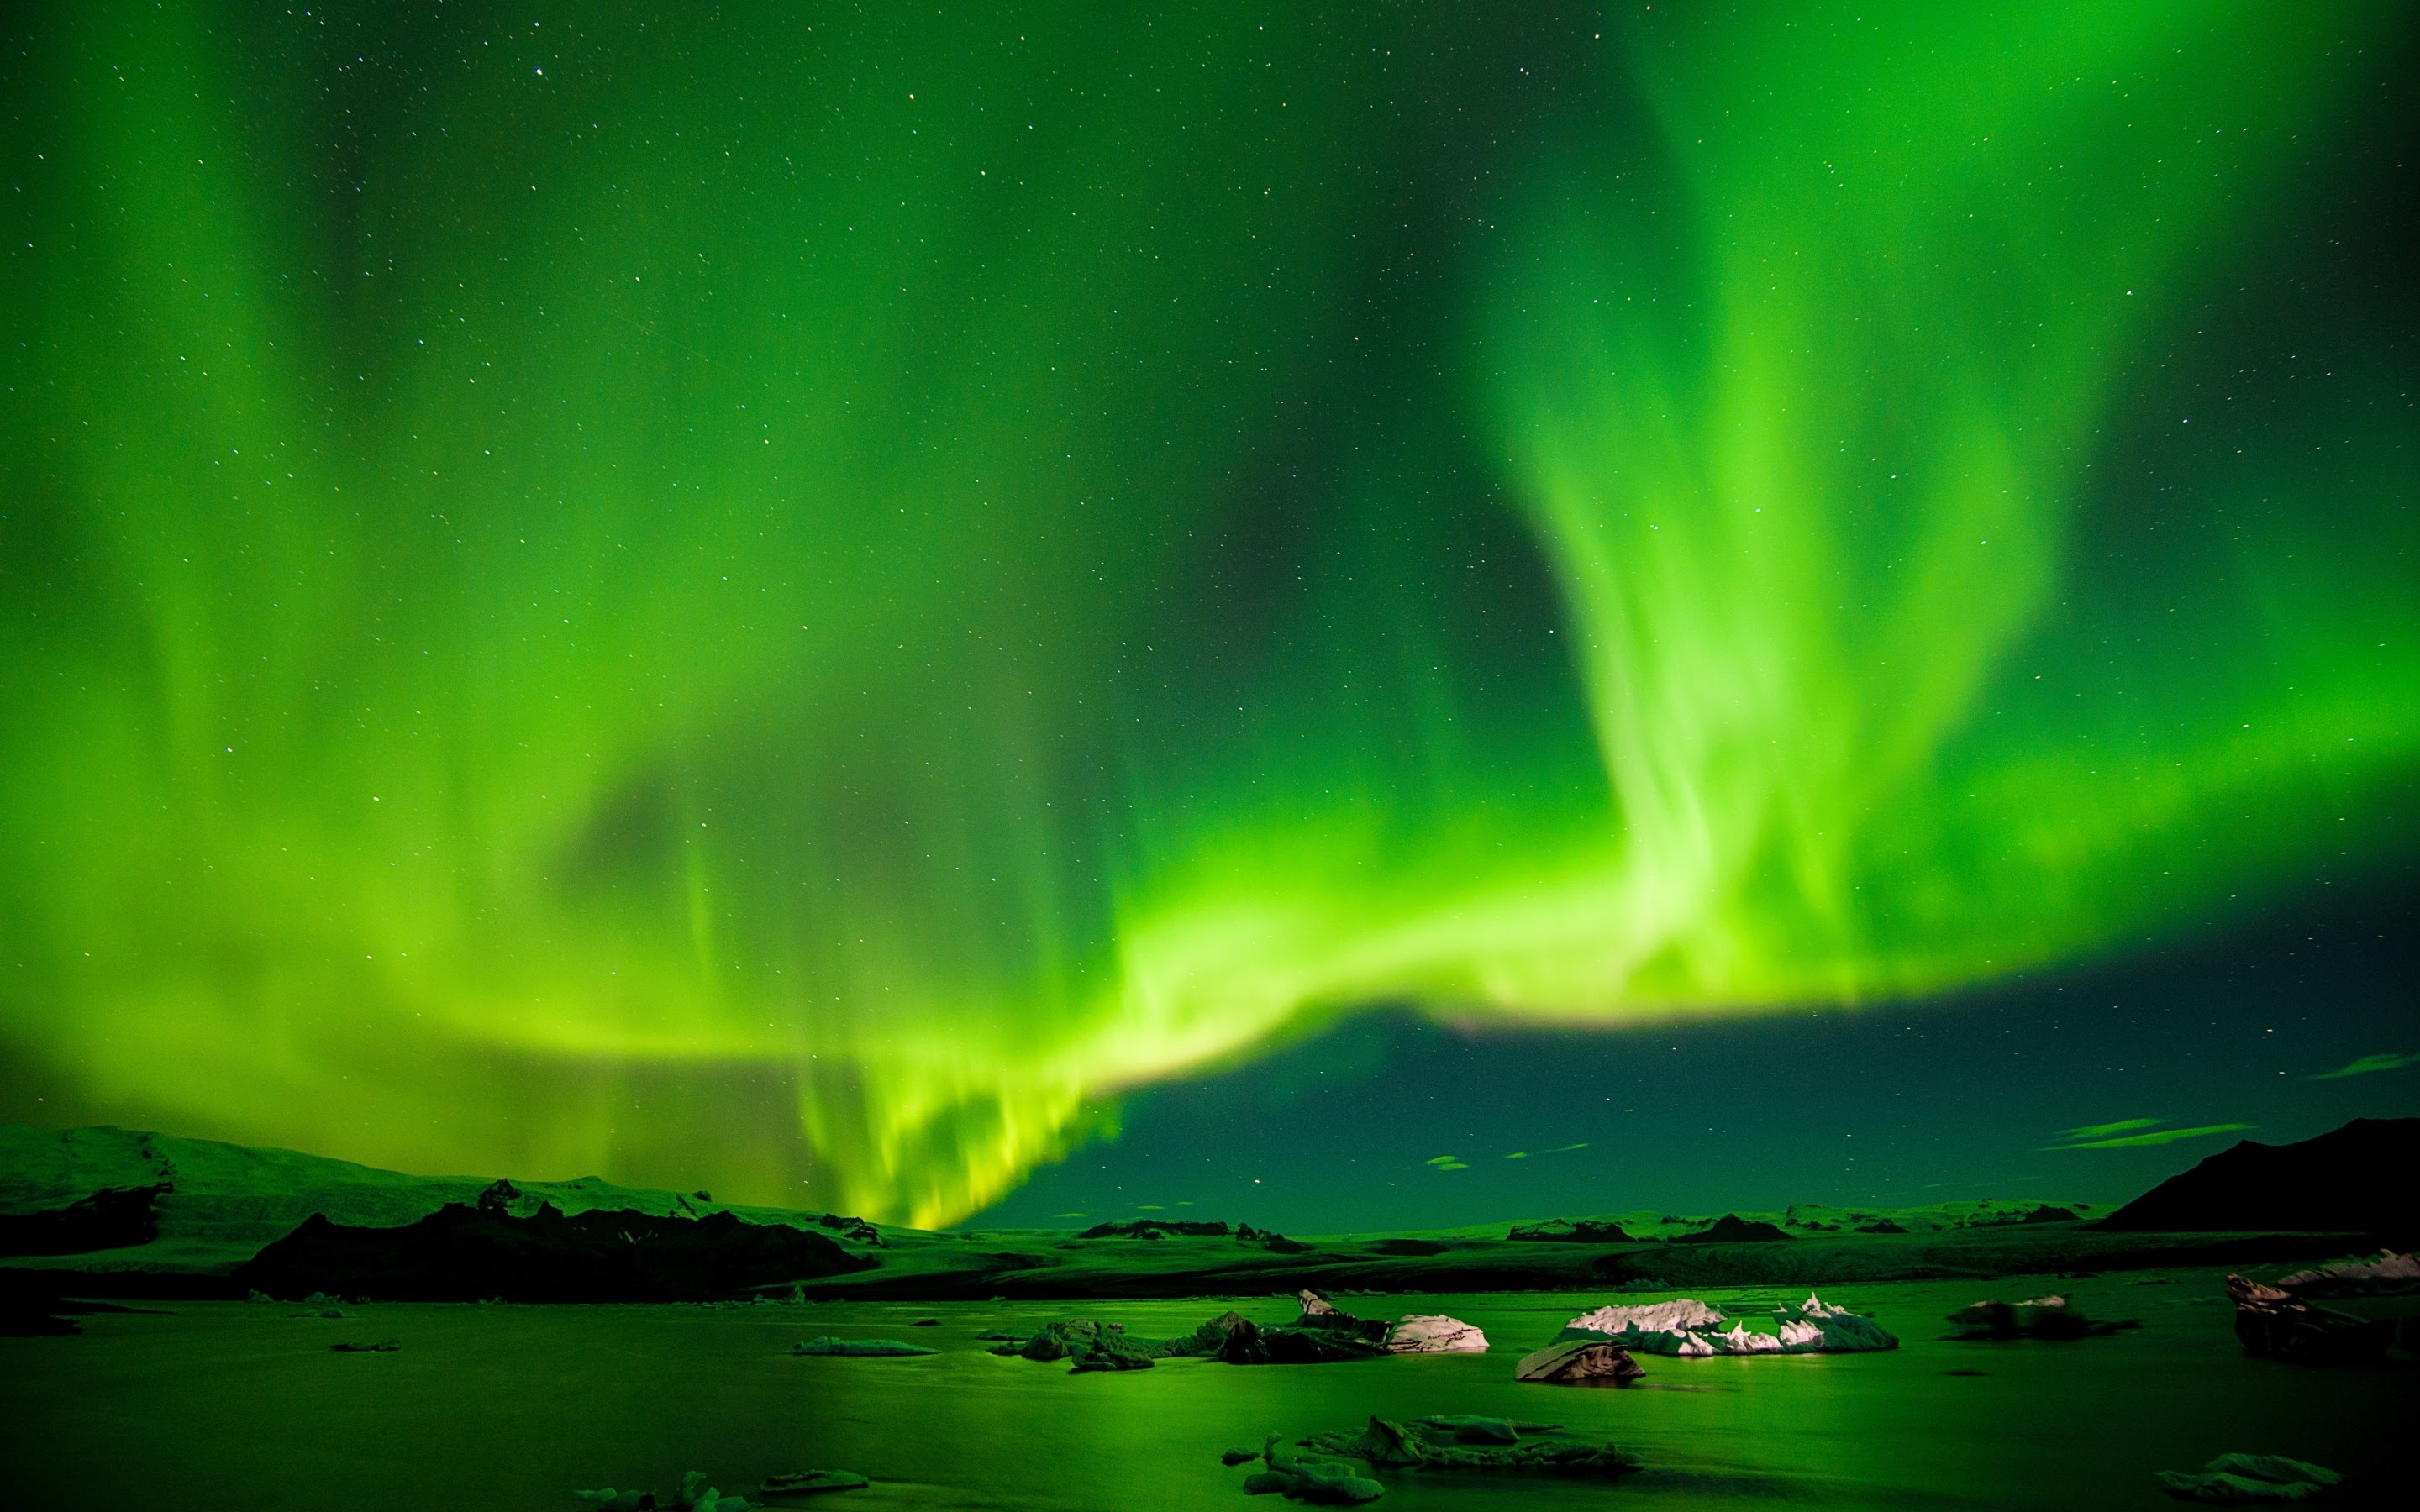 4K HD Wallpaper: Aurora Borealis in Iceland · Free Photo with Northern  Lights